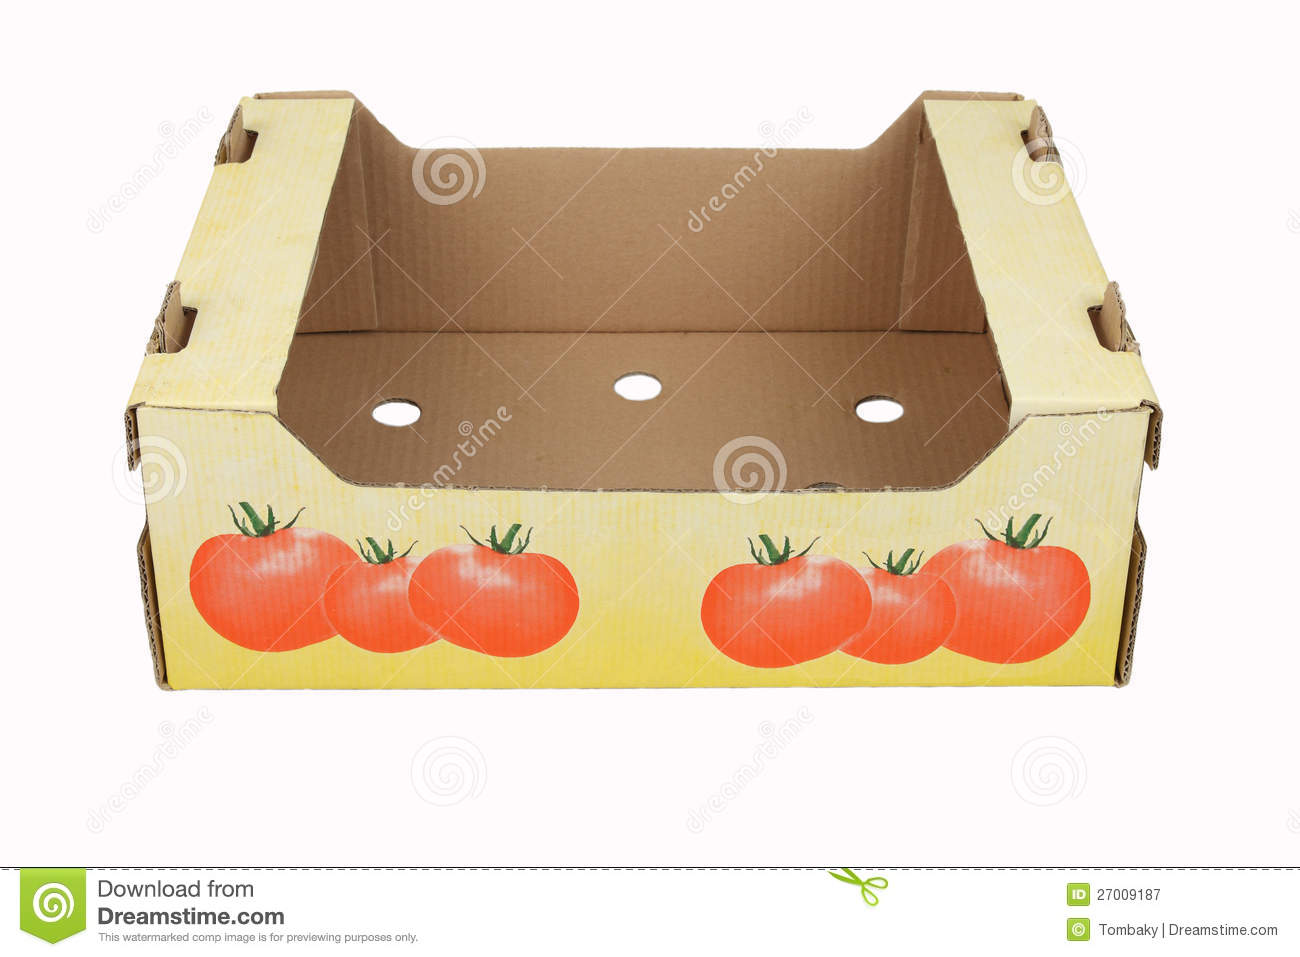 Carton cardboard brown box crate for vegetables, fruit, and things. isolated on white background - buy this illustration on Shutterstock & find other images.